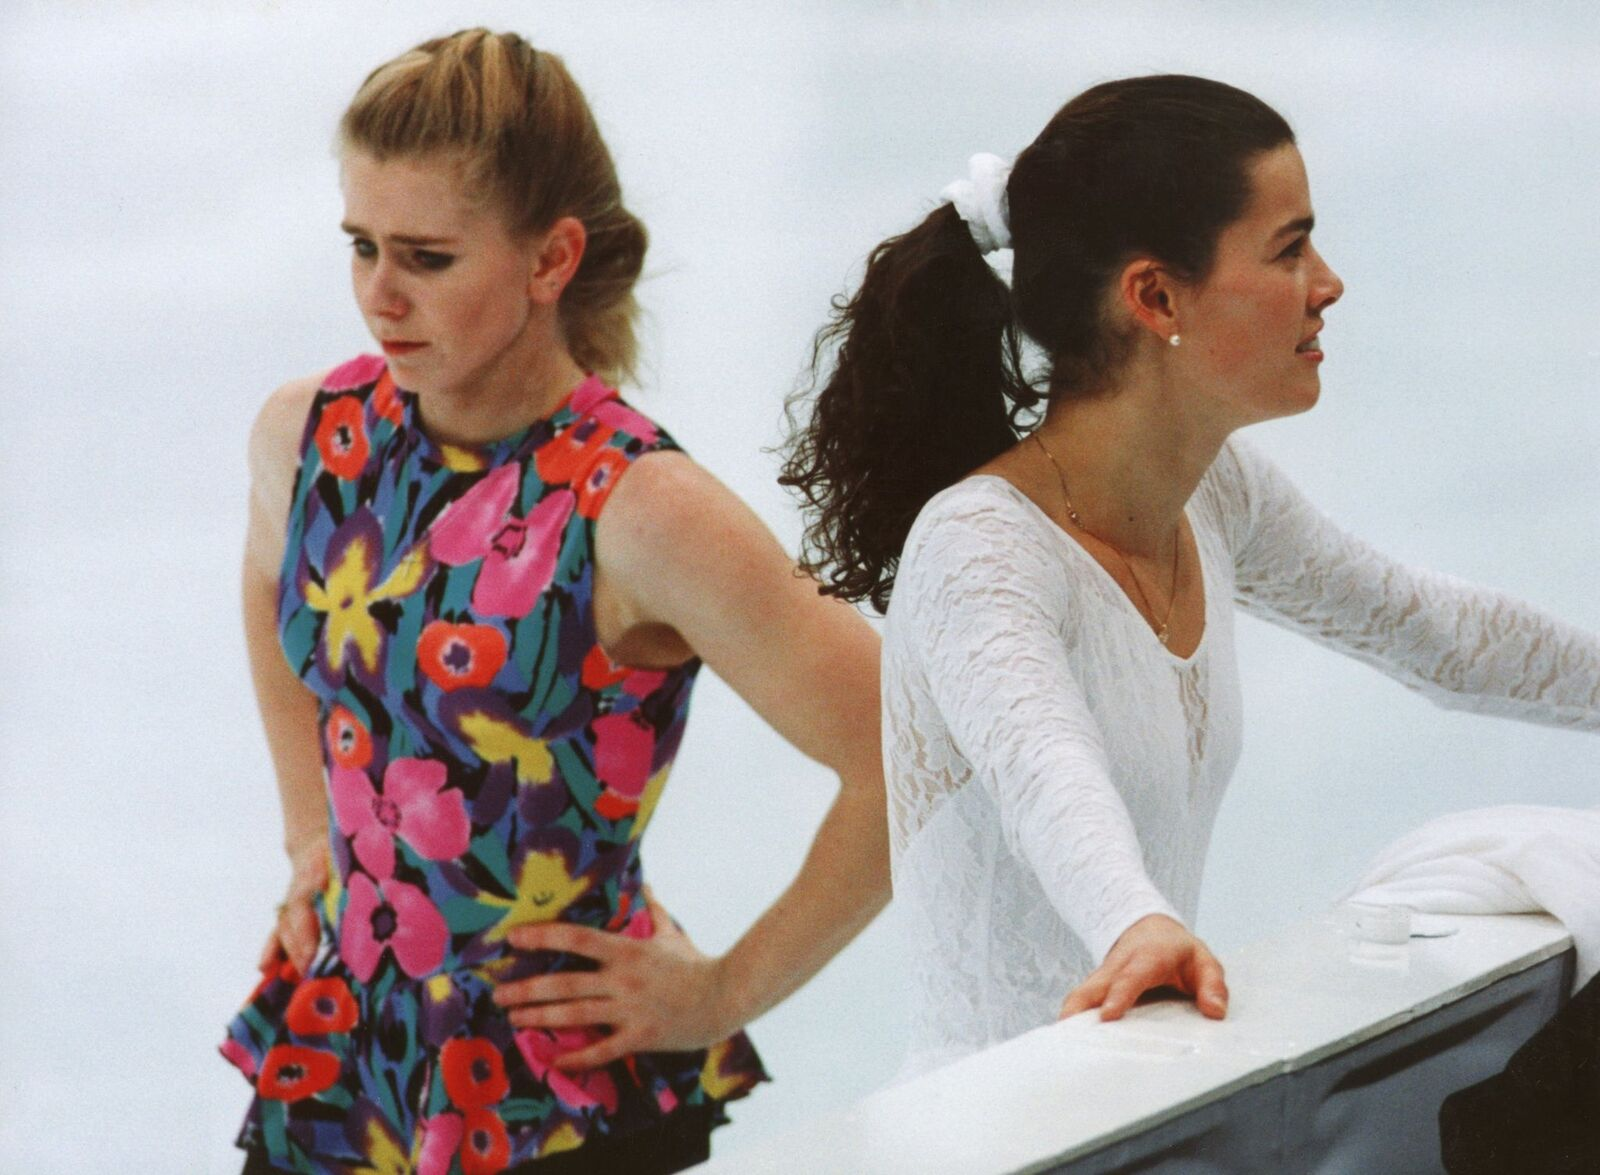 Tonya Harding and Nancy Kerrigan training on February 17th, 1994 in Hamar a month after Kerrigan was attacked in Detroit | Source: Getty Images